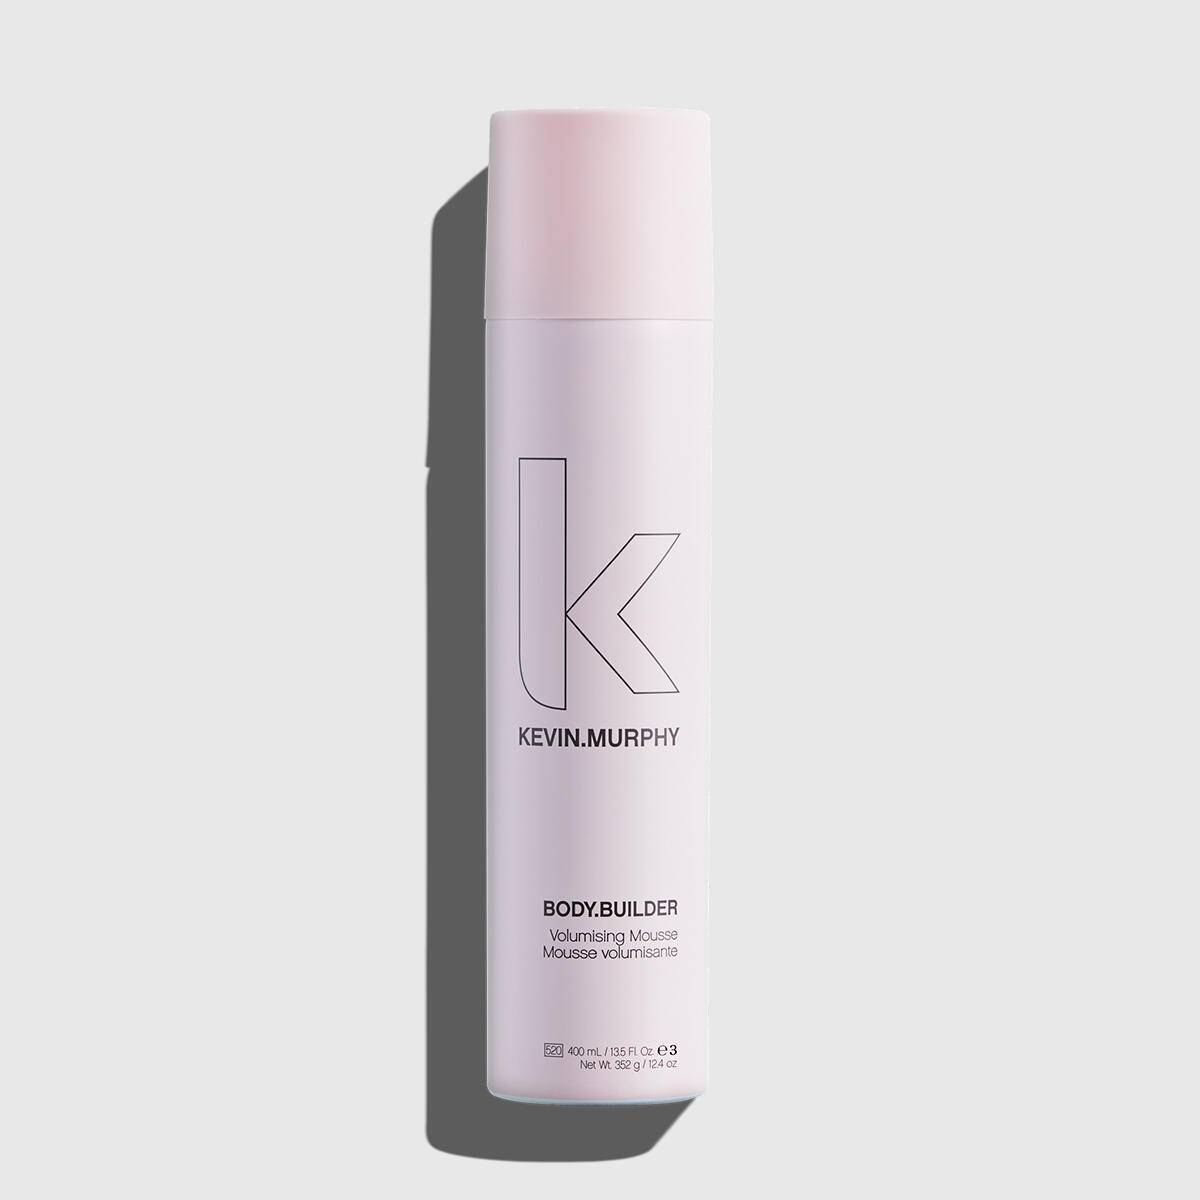 Kevin Murphy Body Builder null